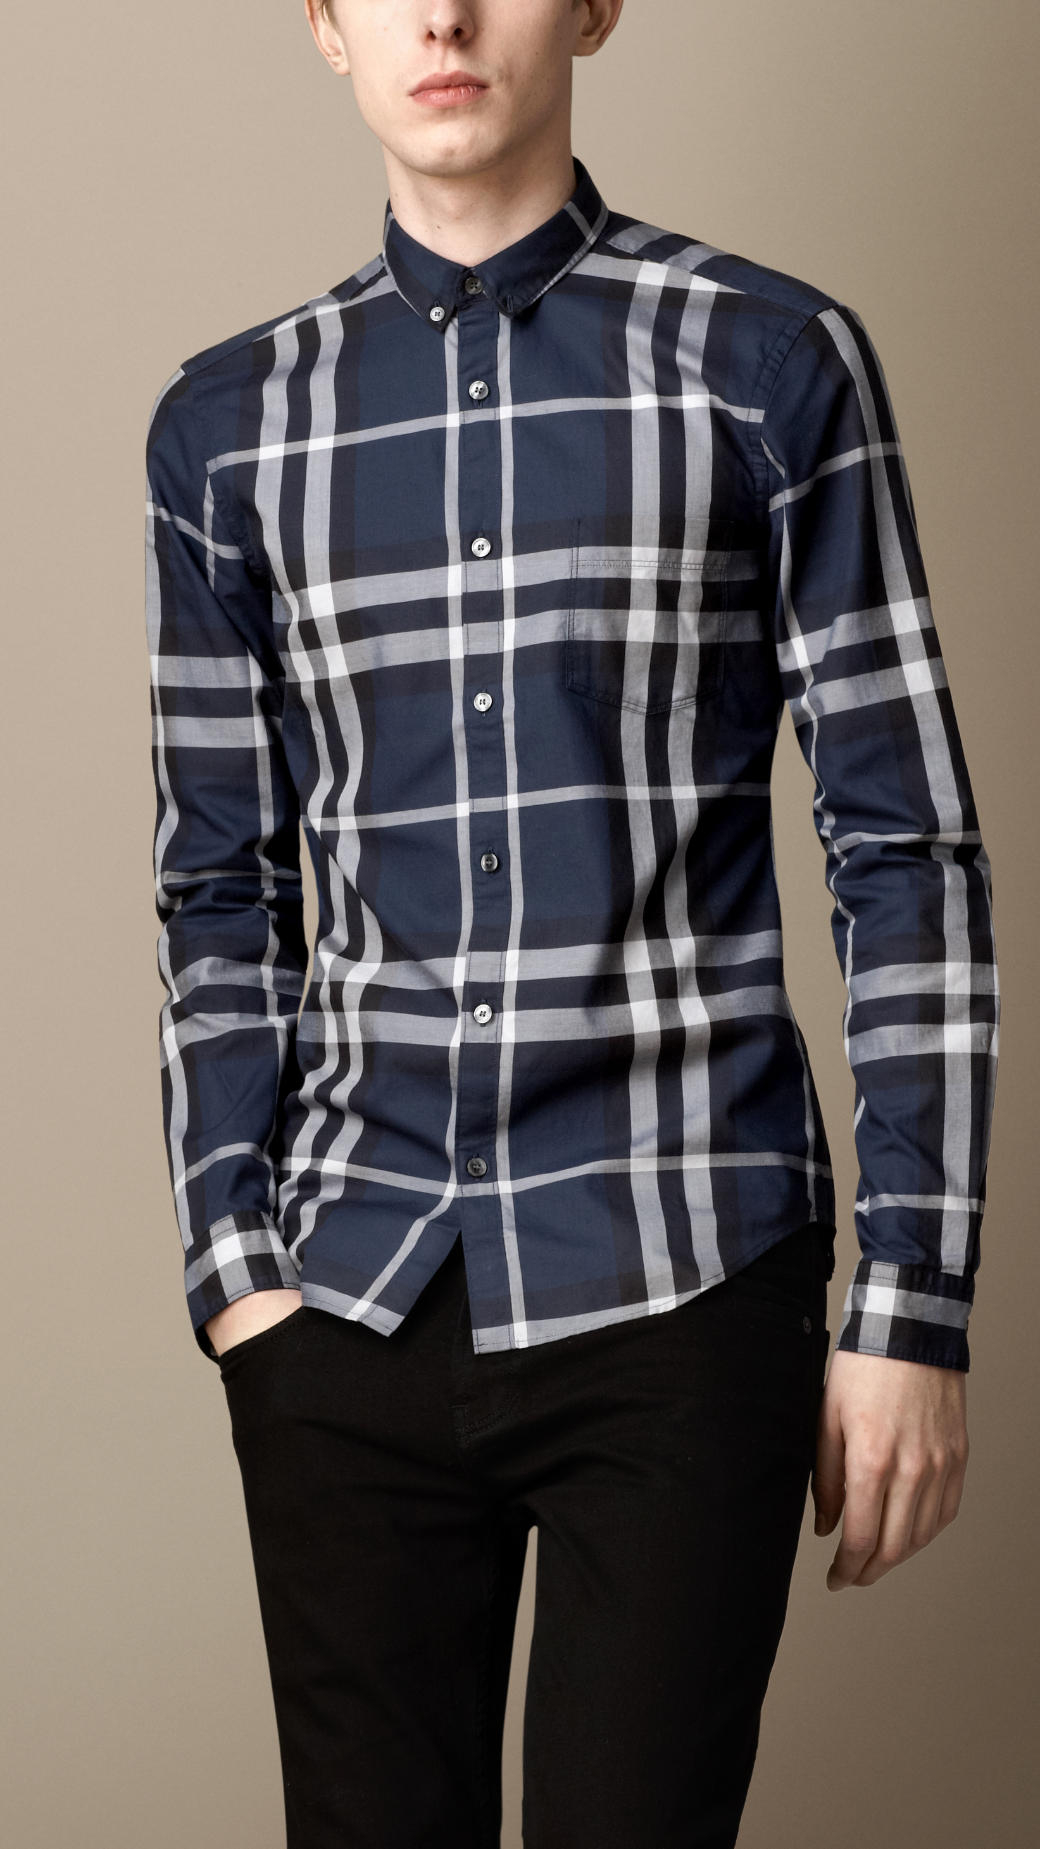 0d9fce489eb3 Lyst - Burberry Exploded Check Cotton Shirt in Blue for Men